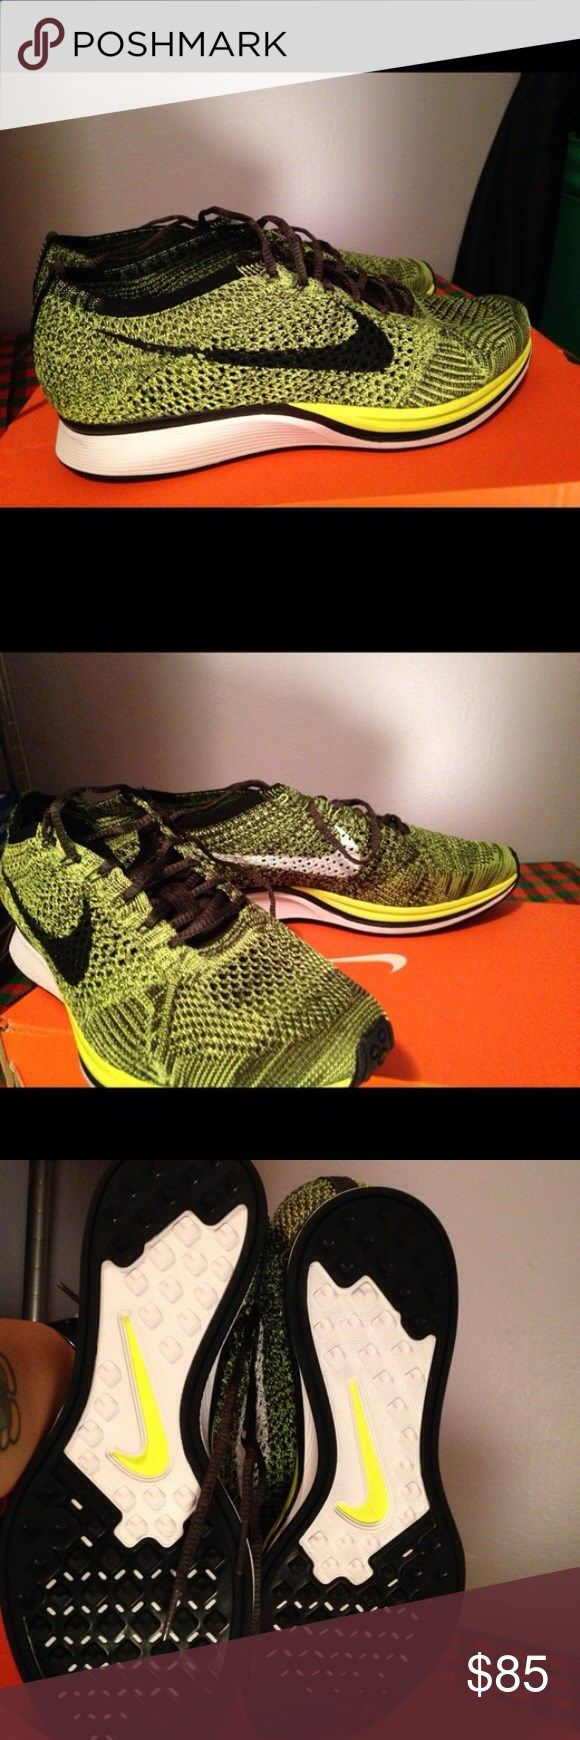 Nike flyknit racer volt Nike flyknit racer Volt/black in great condition 10/10 style number 526628-731 Men size 8.5 Convert to women size its a 10 IT WILL COME IN ITS ORIGINAL BOX :) SEND ME SOME REASONABLE OFFERS Nike Shoes Sneakers